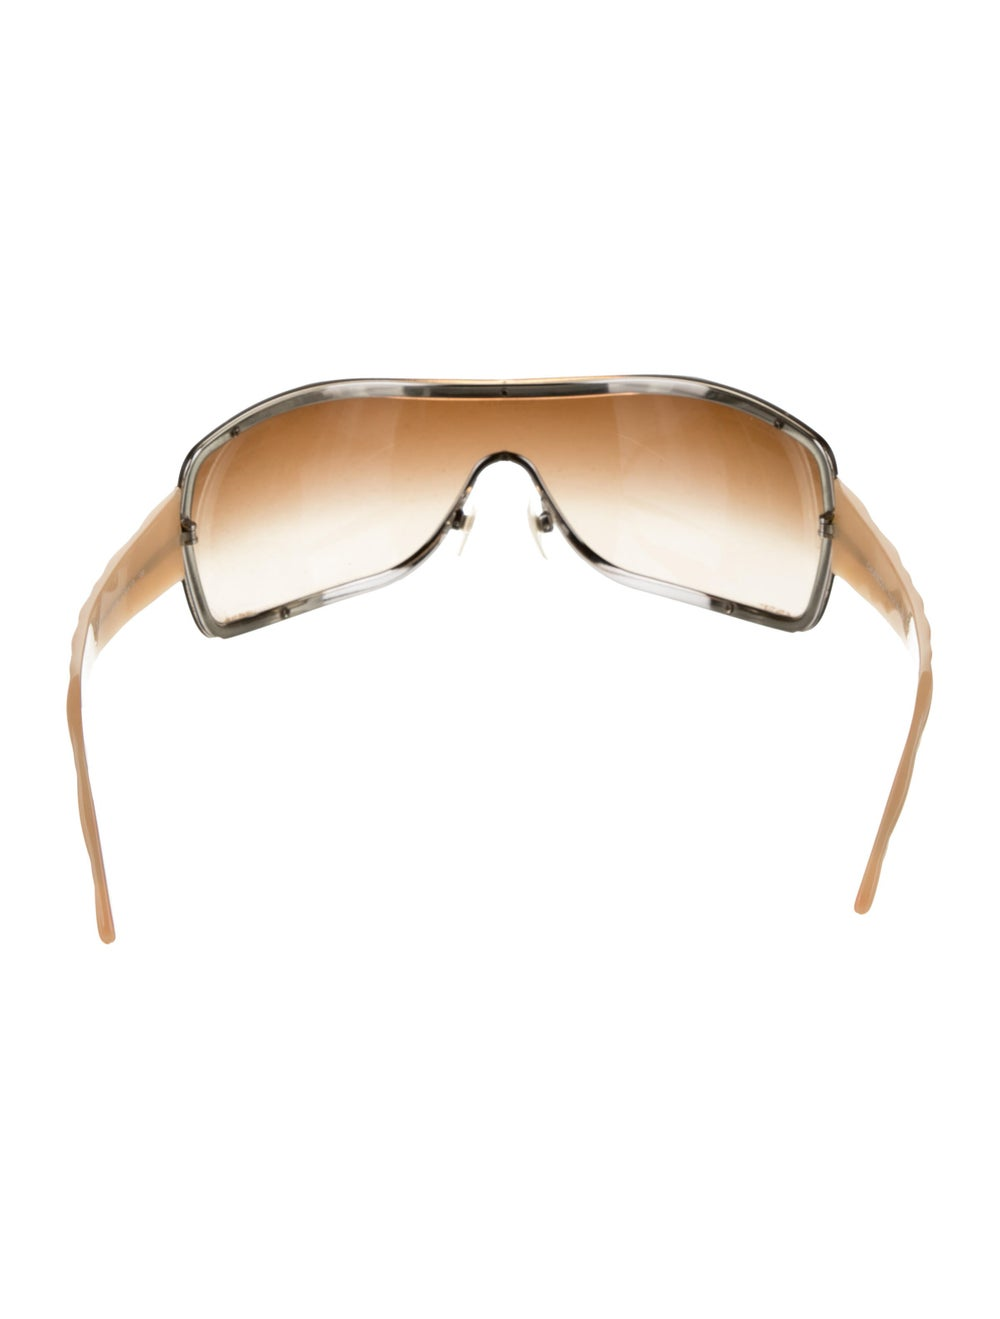 Chanel Quilted Shield Sunglasses Champagne - image 3